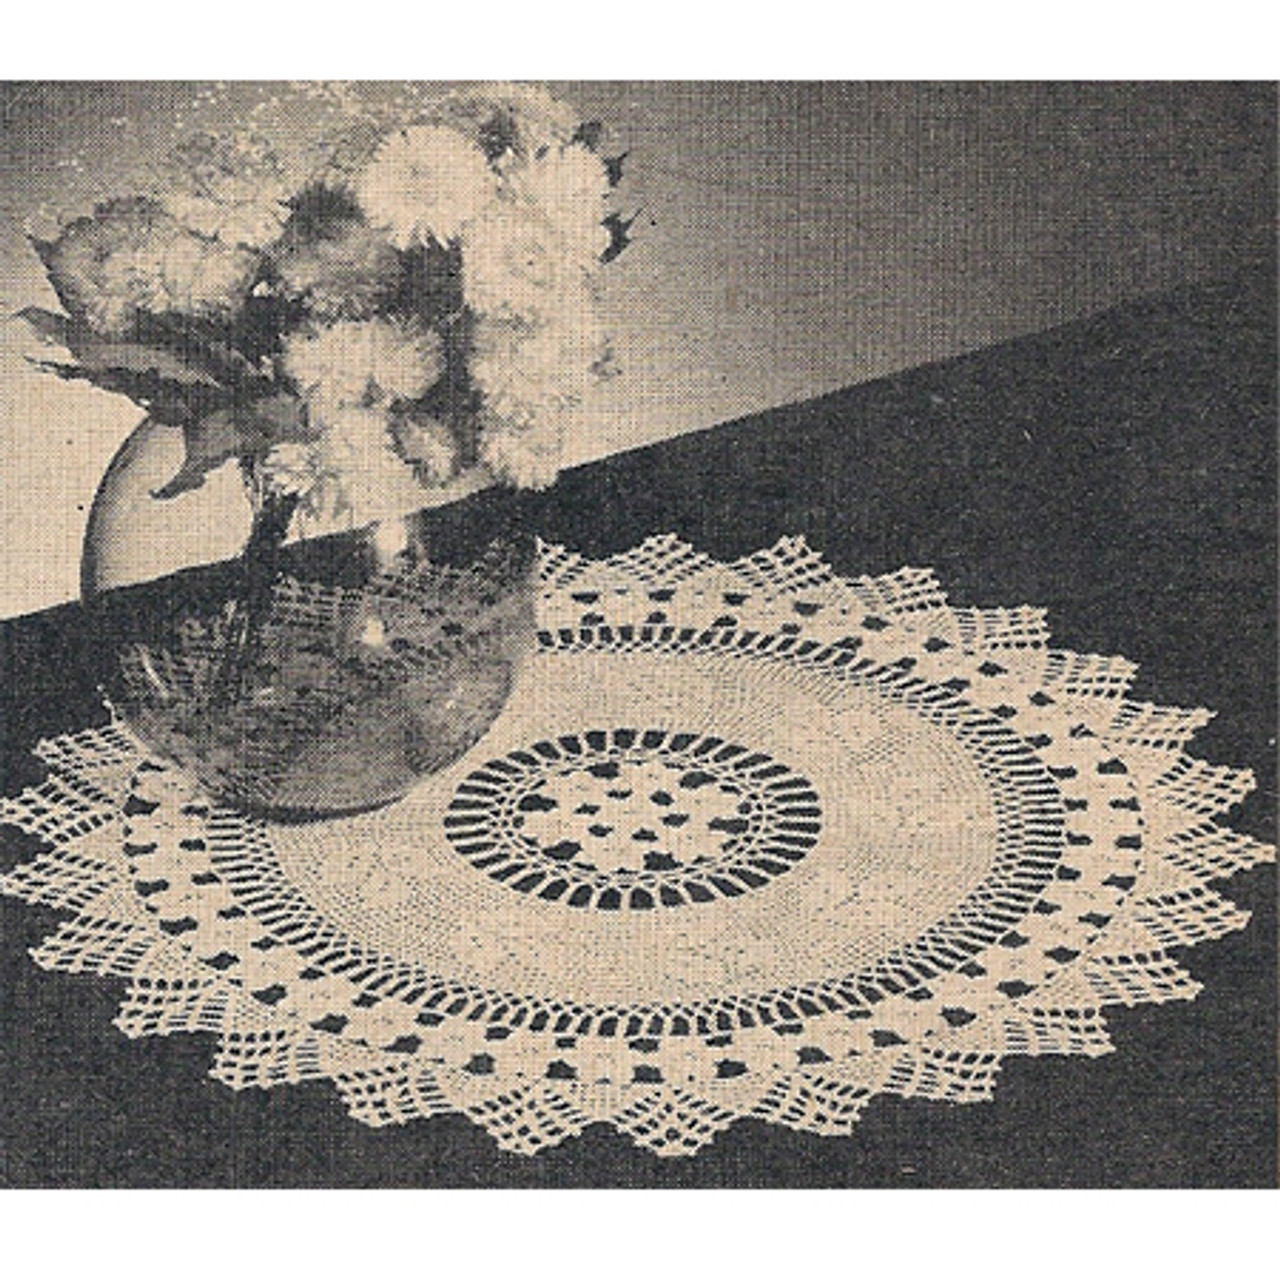 Rose Filet Crocheted Doily pattern from Workbasket